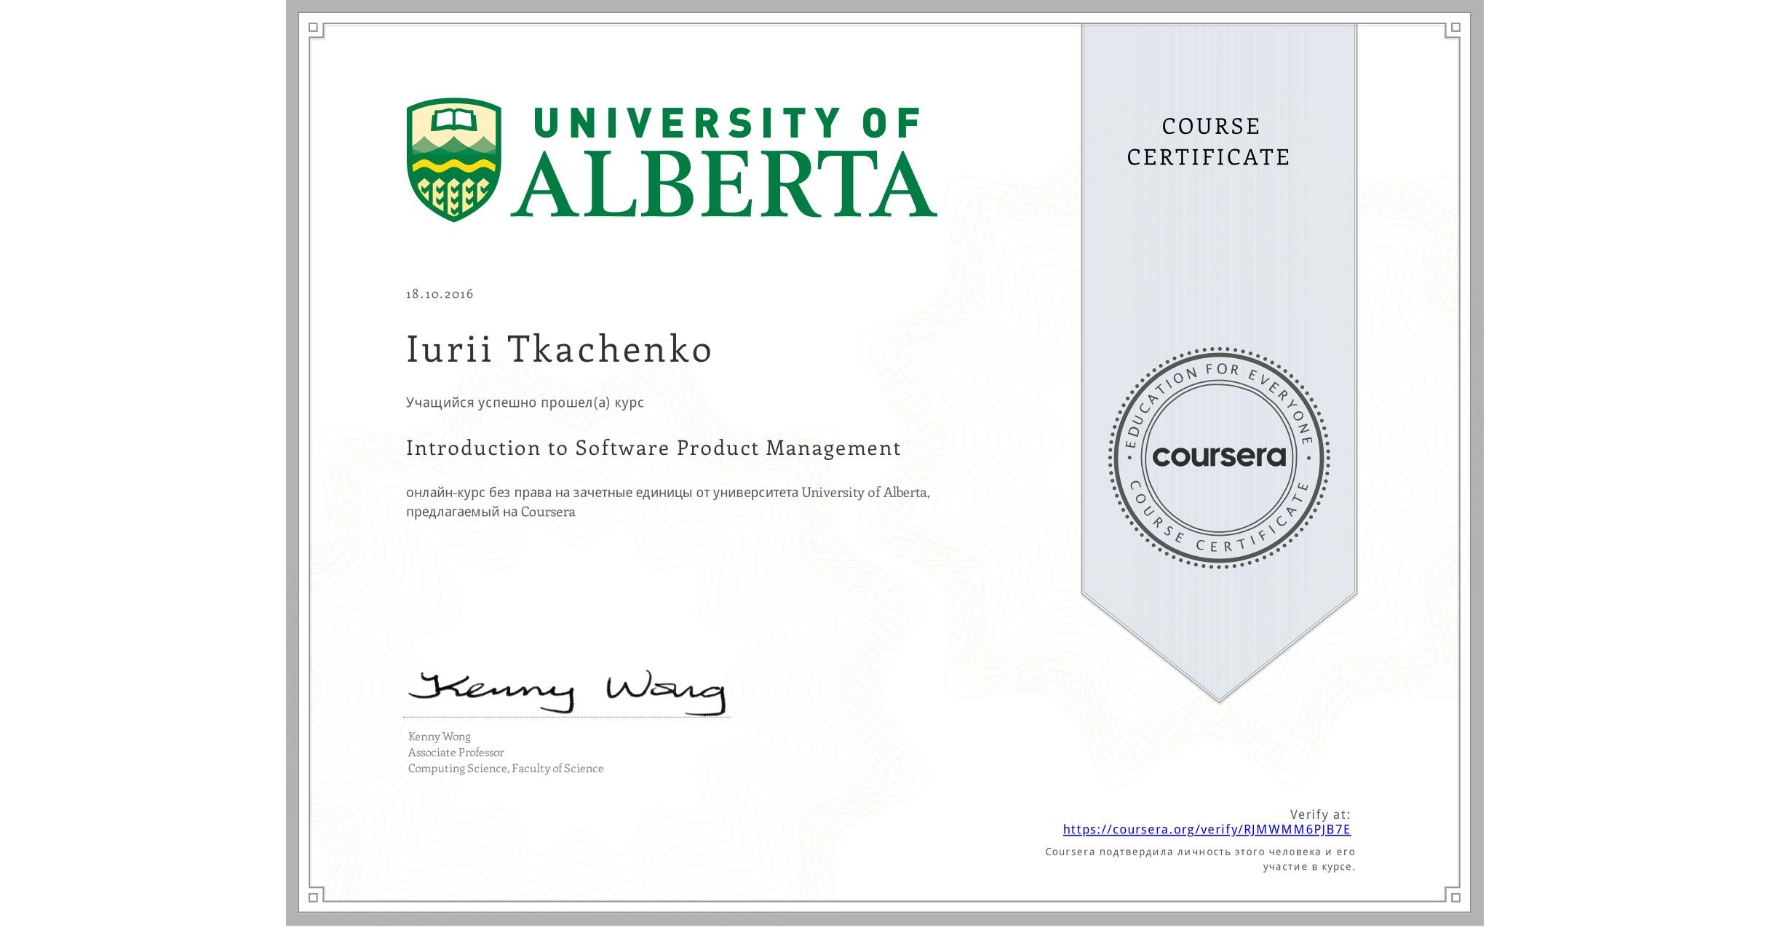 View certificate for Iurii Tkachenko, Introduction to Software Product Management, an online non-credit course authorized by University of Alberta and offered through Coursera